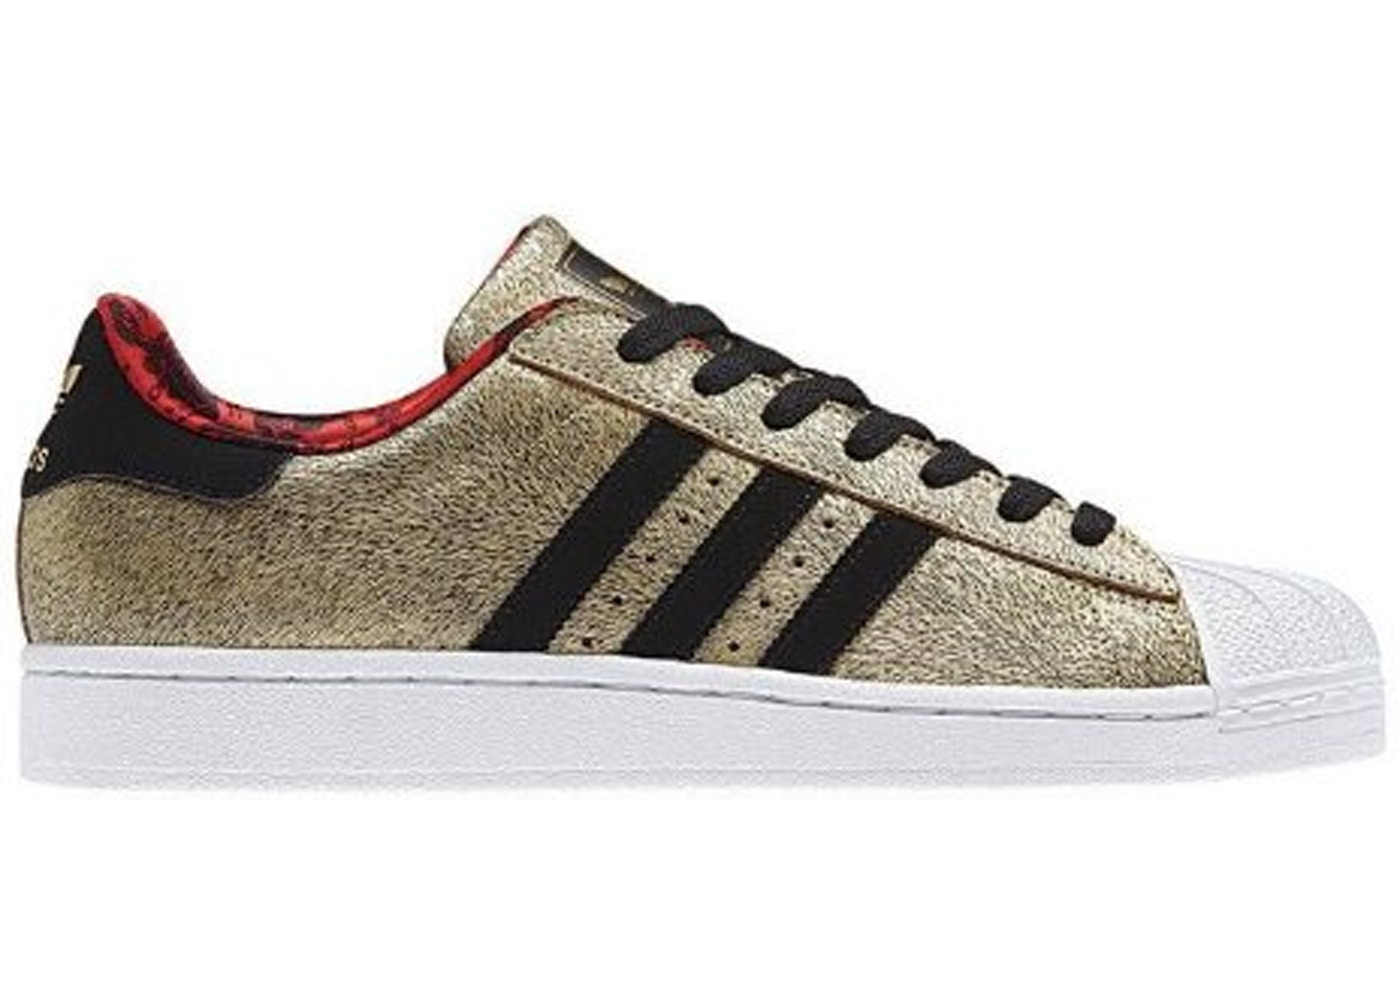 innovative design 42712 7cd0f adidas Superstar 2 Year of the Horse